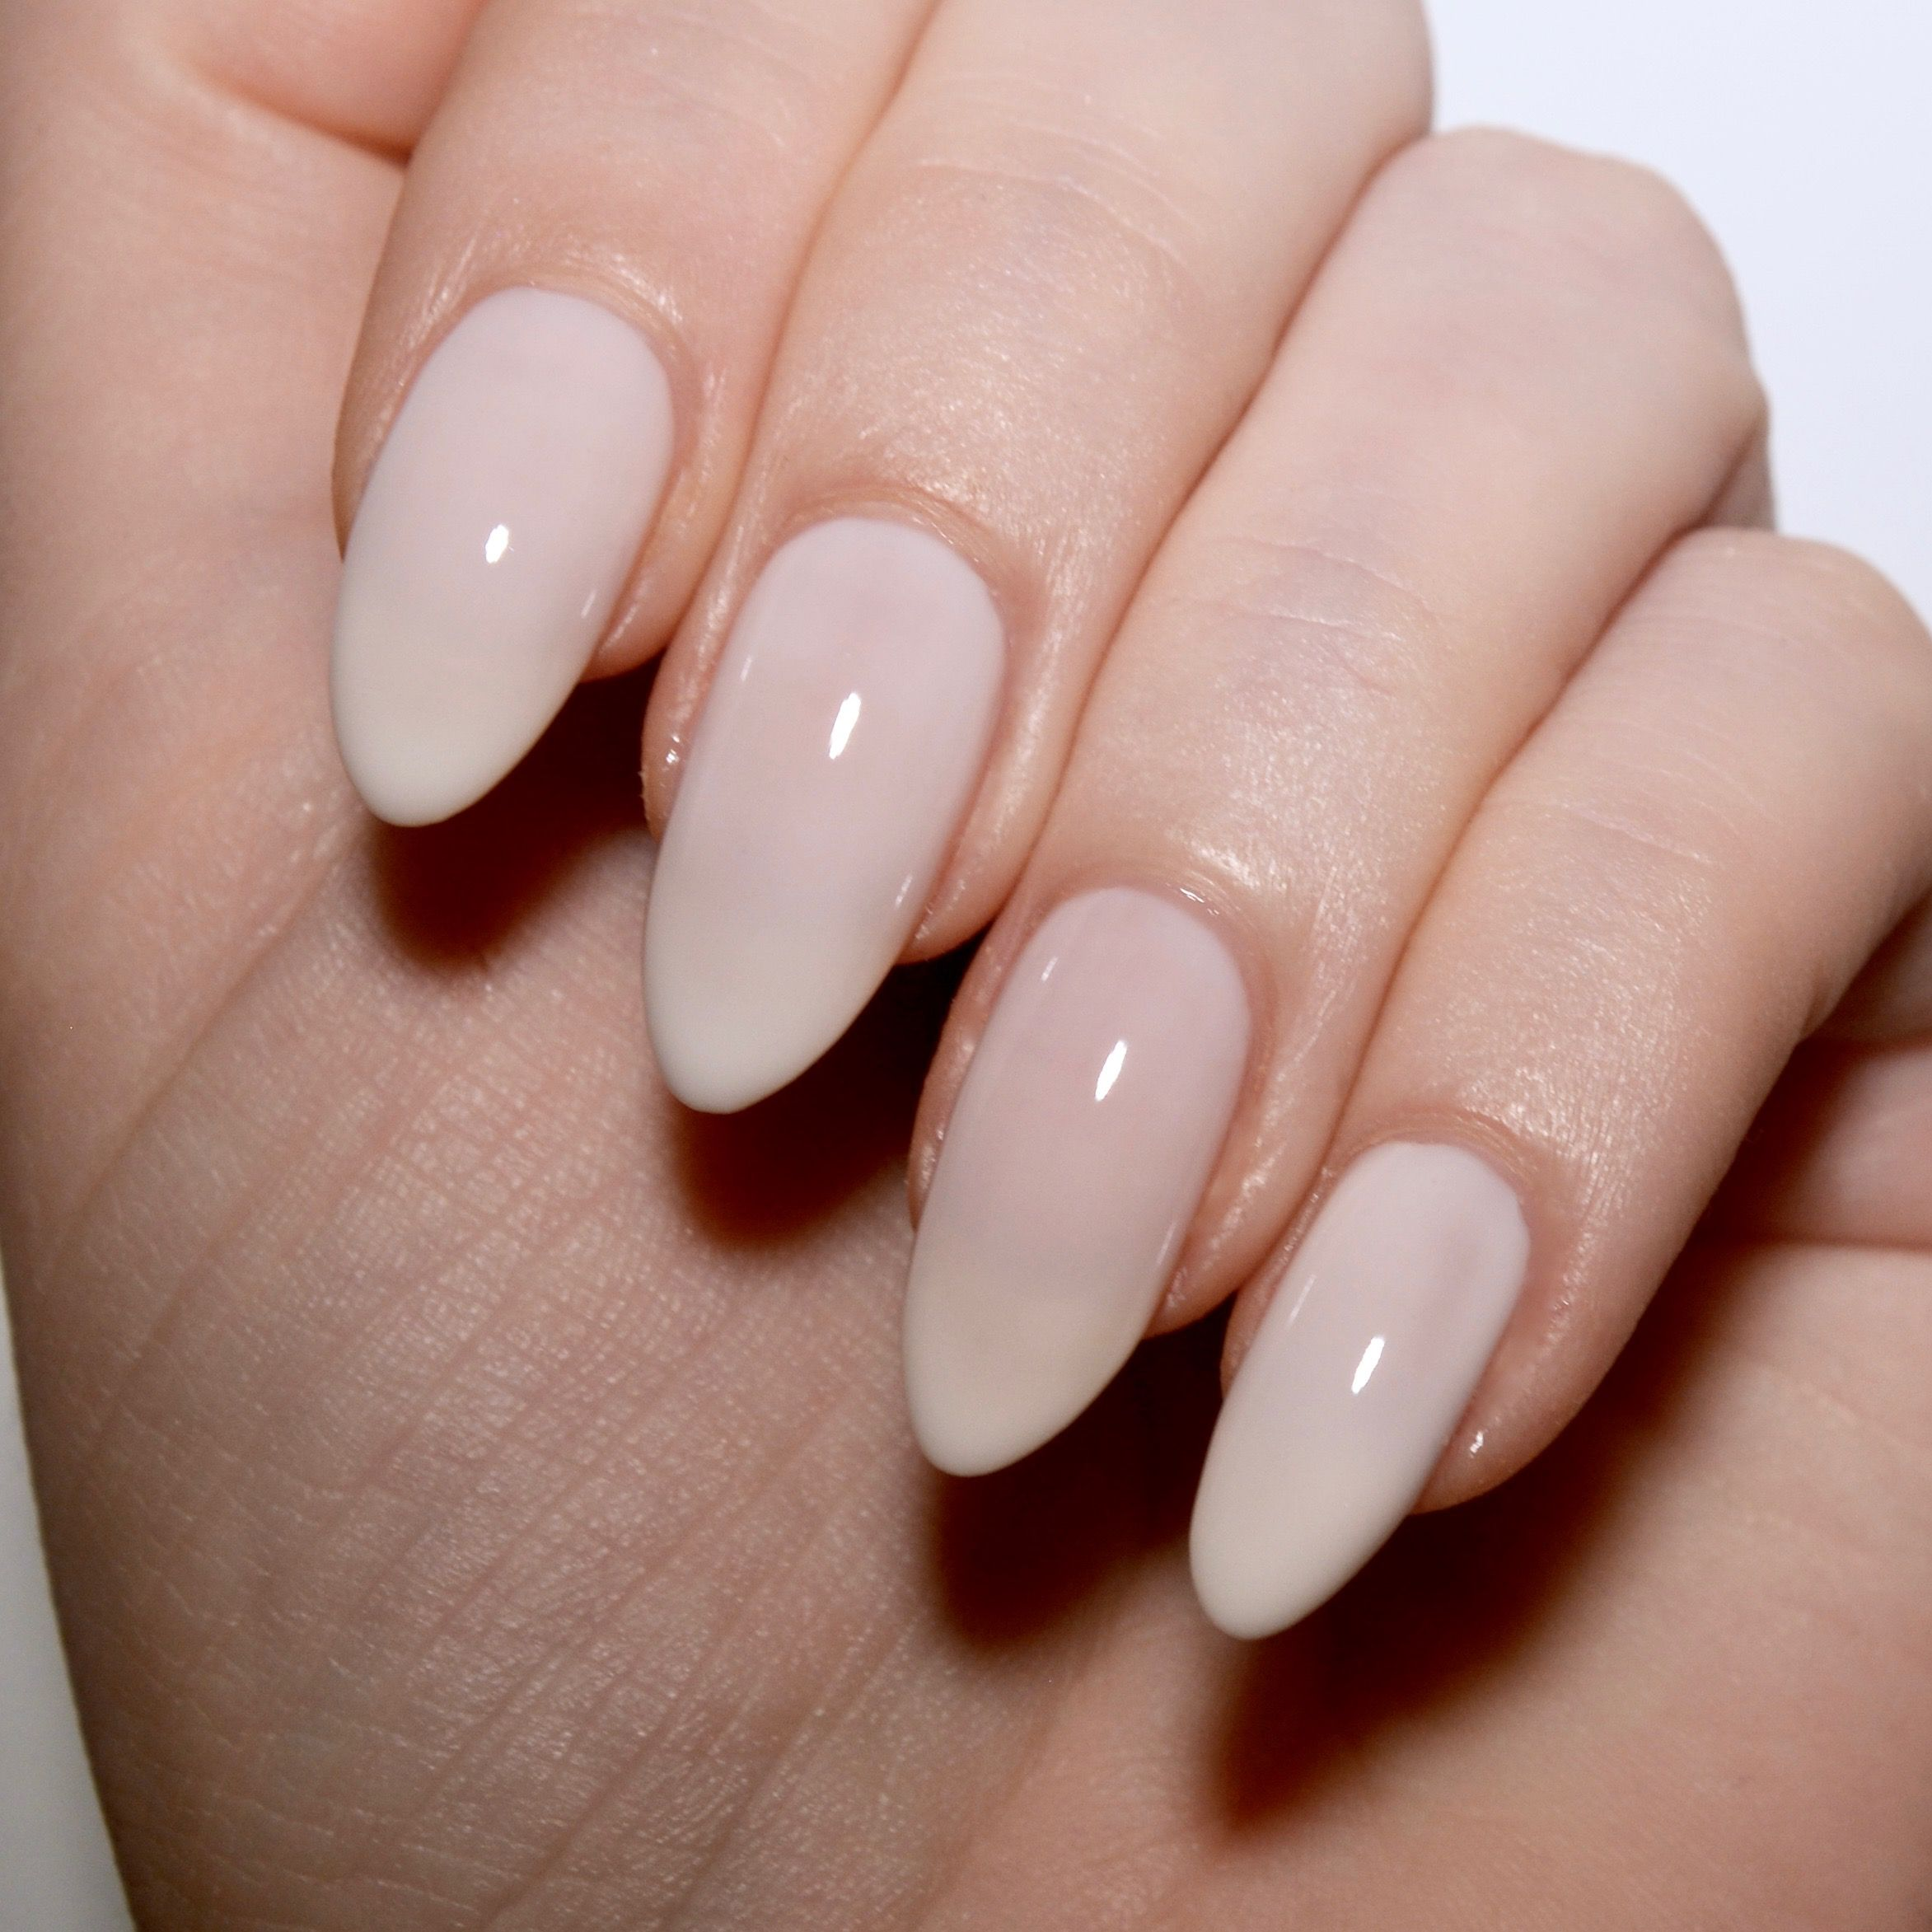 Essie Bridal 2017 Collection | Manicure, Natural color ...